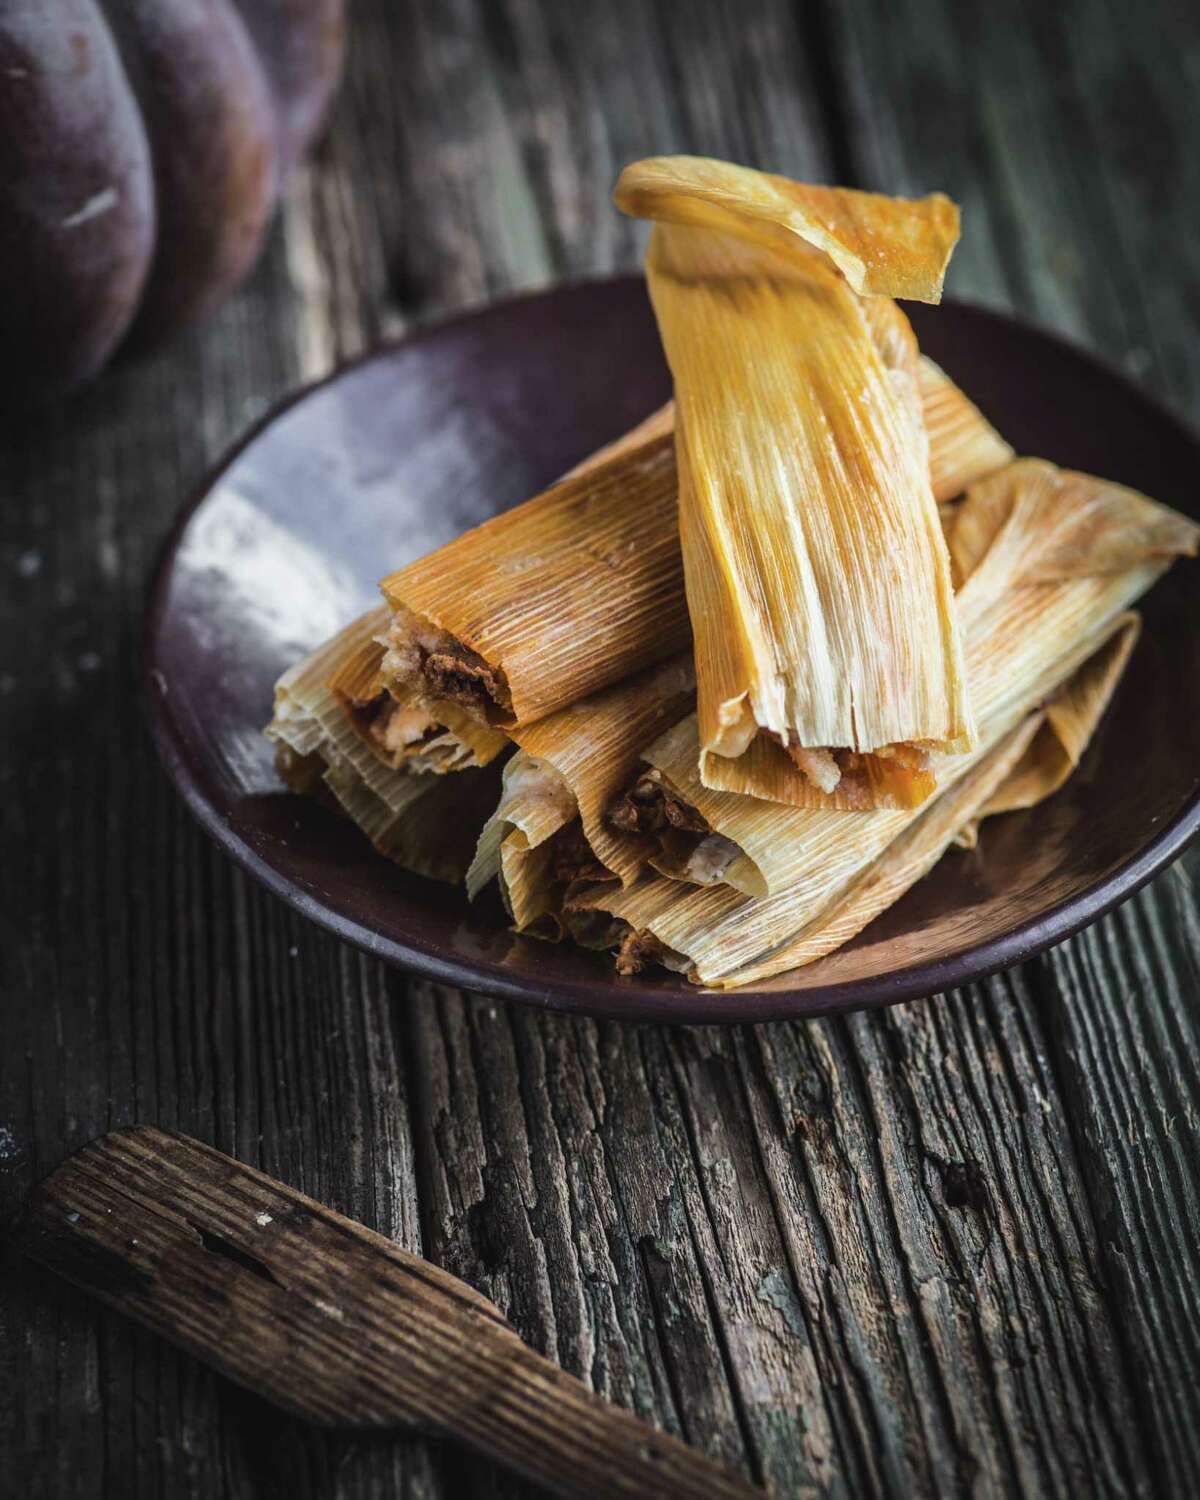 A batch of tamales made by cookbook author and food scholar Melissa Guerra.